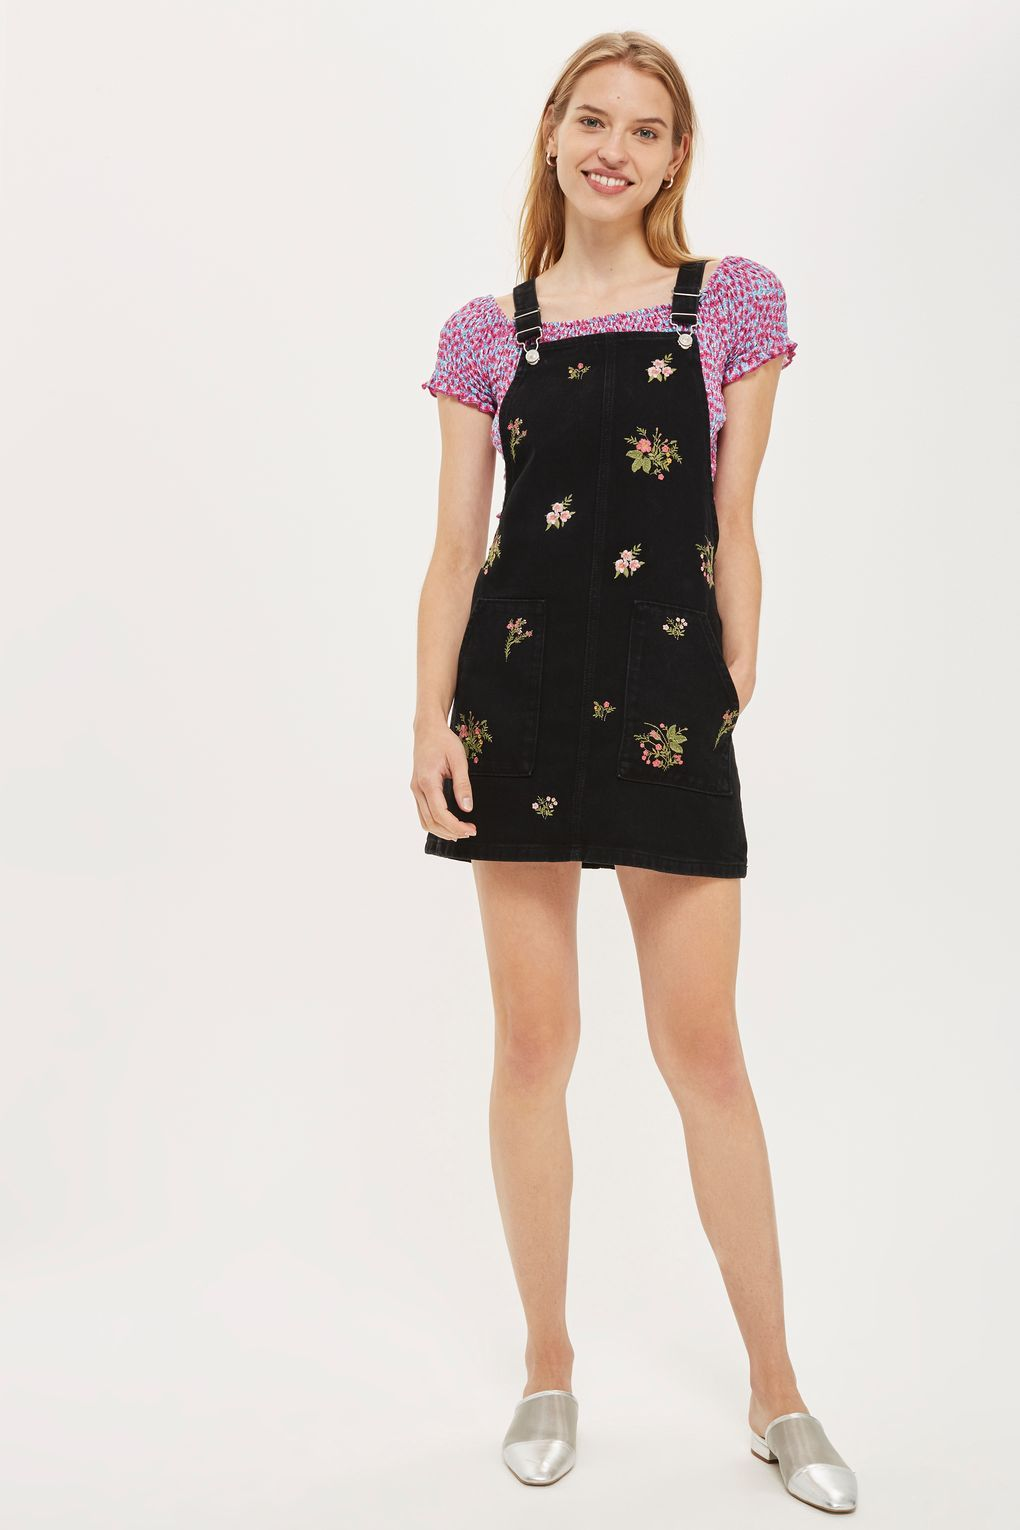 ef98c081fa38 PETITE Floral Embroidered Pinafore Dress | Clothing | Pinafore dress ...